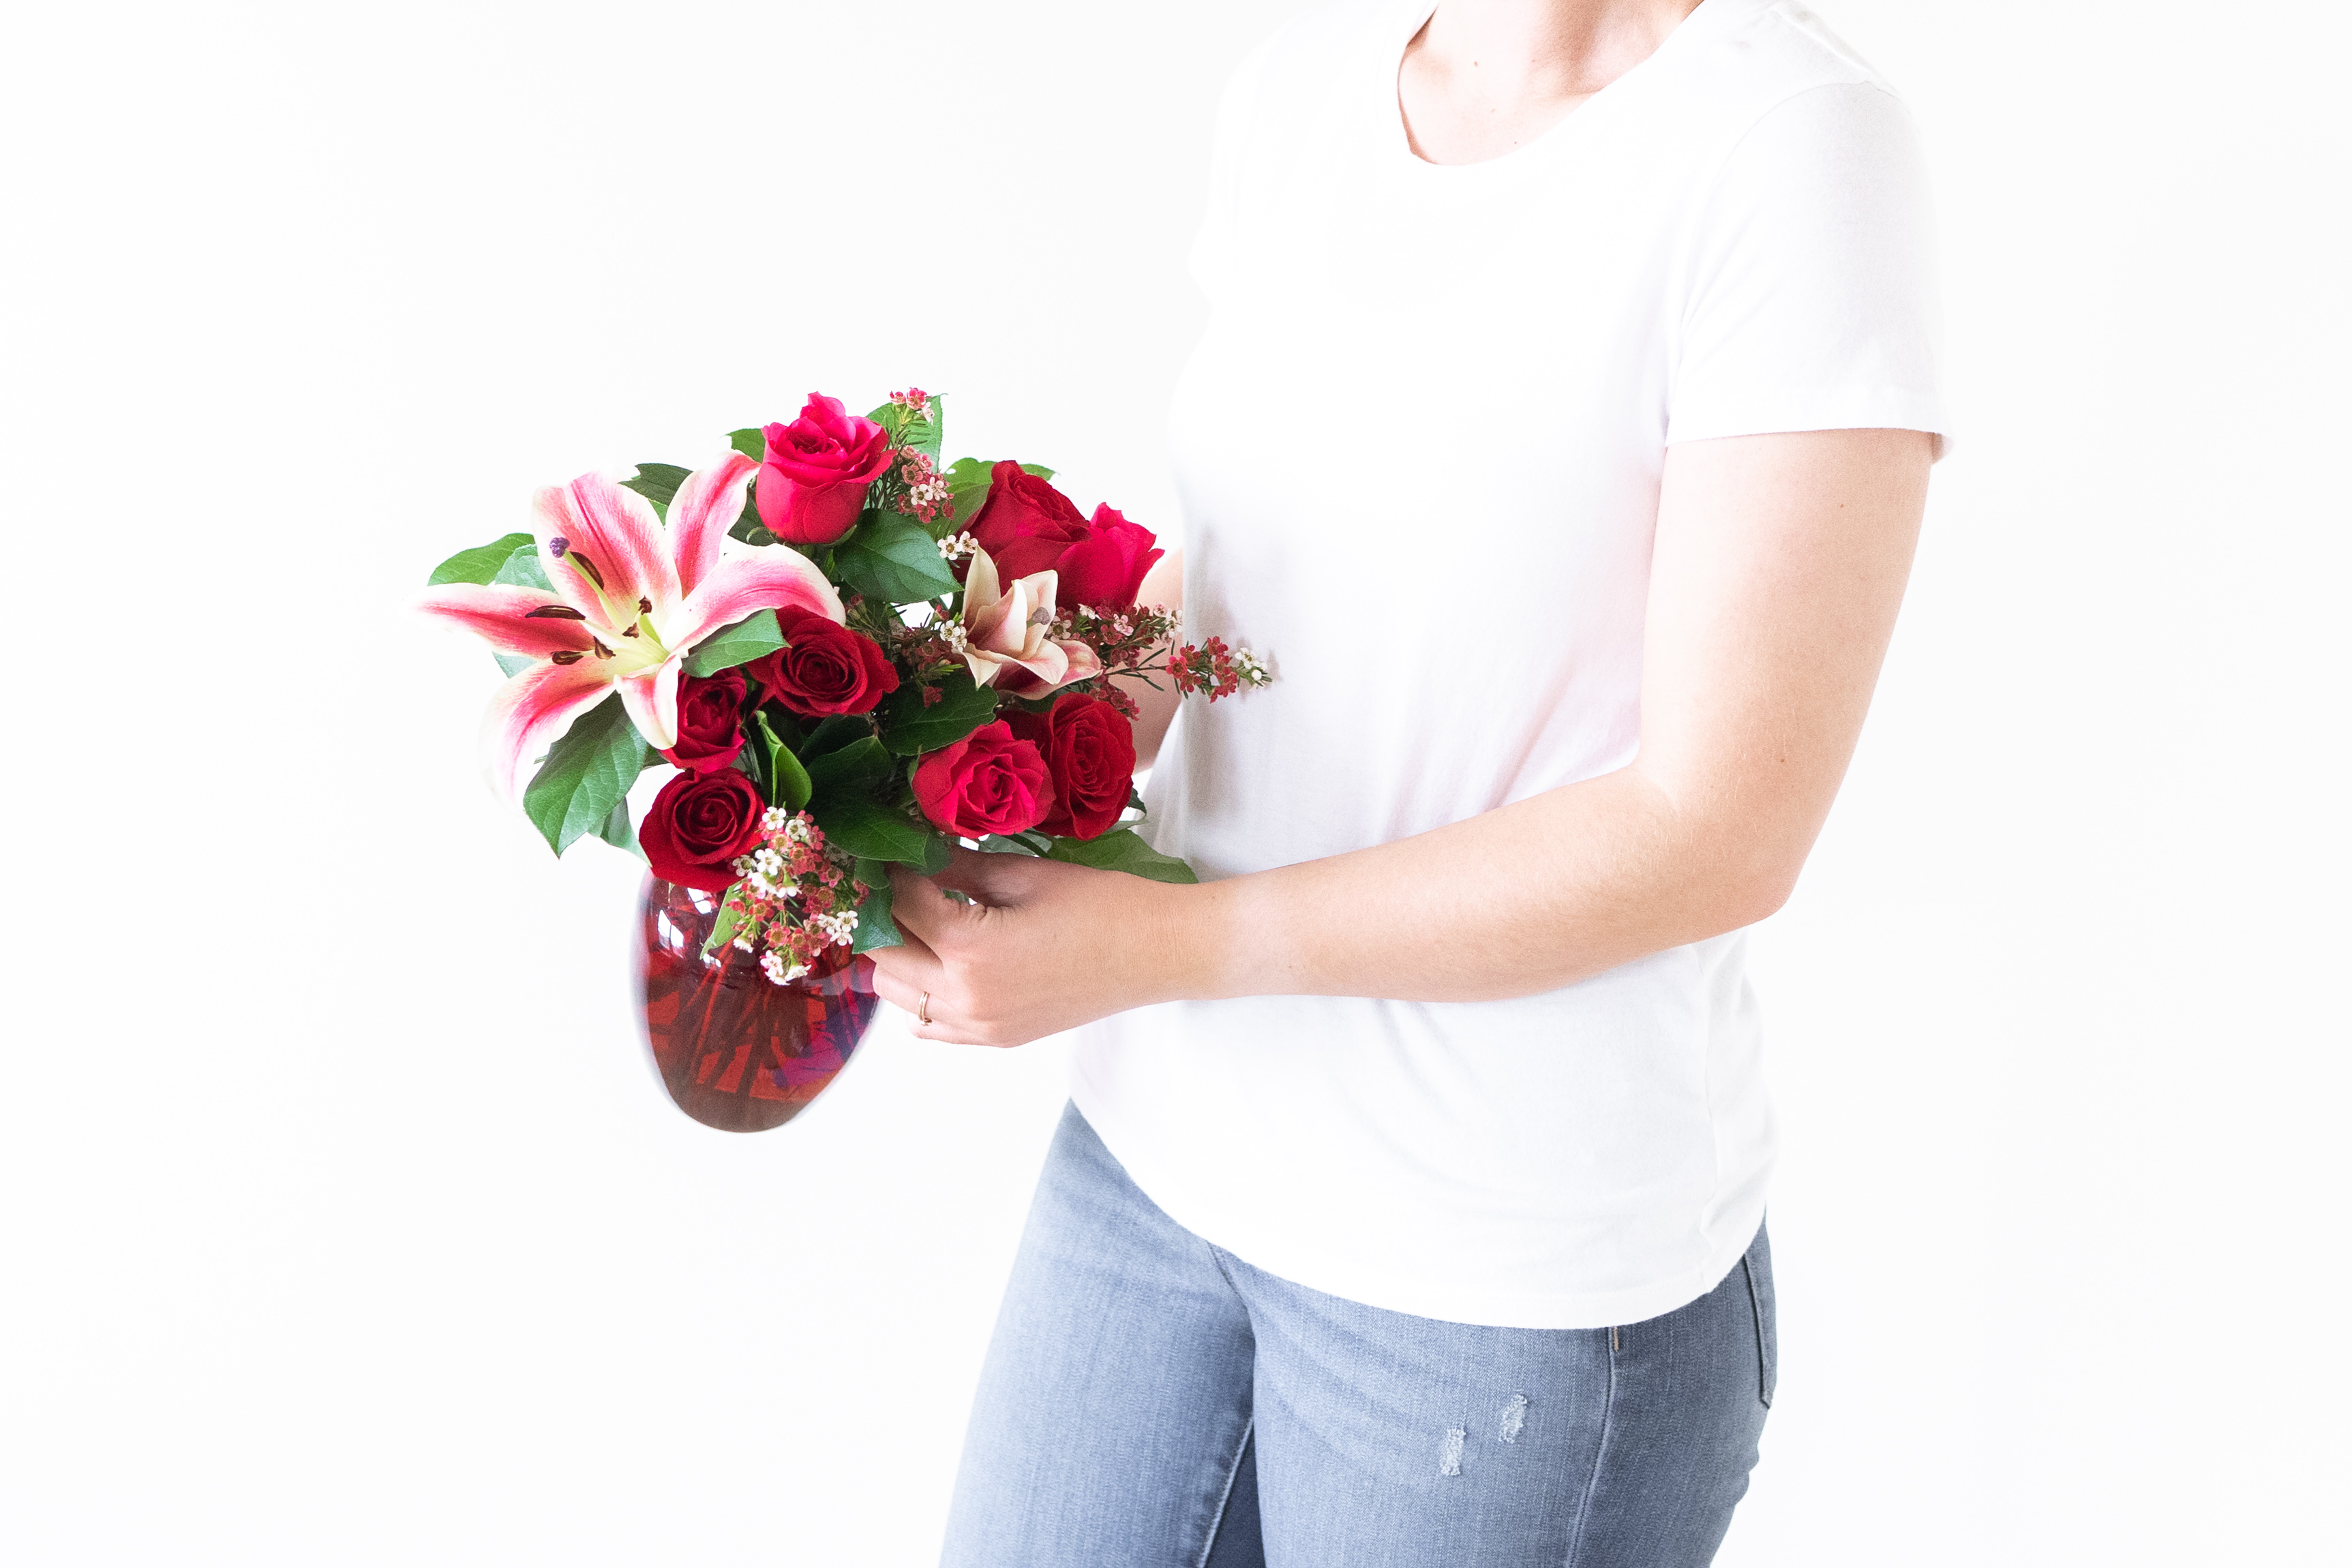 What are the best flowers for a women?